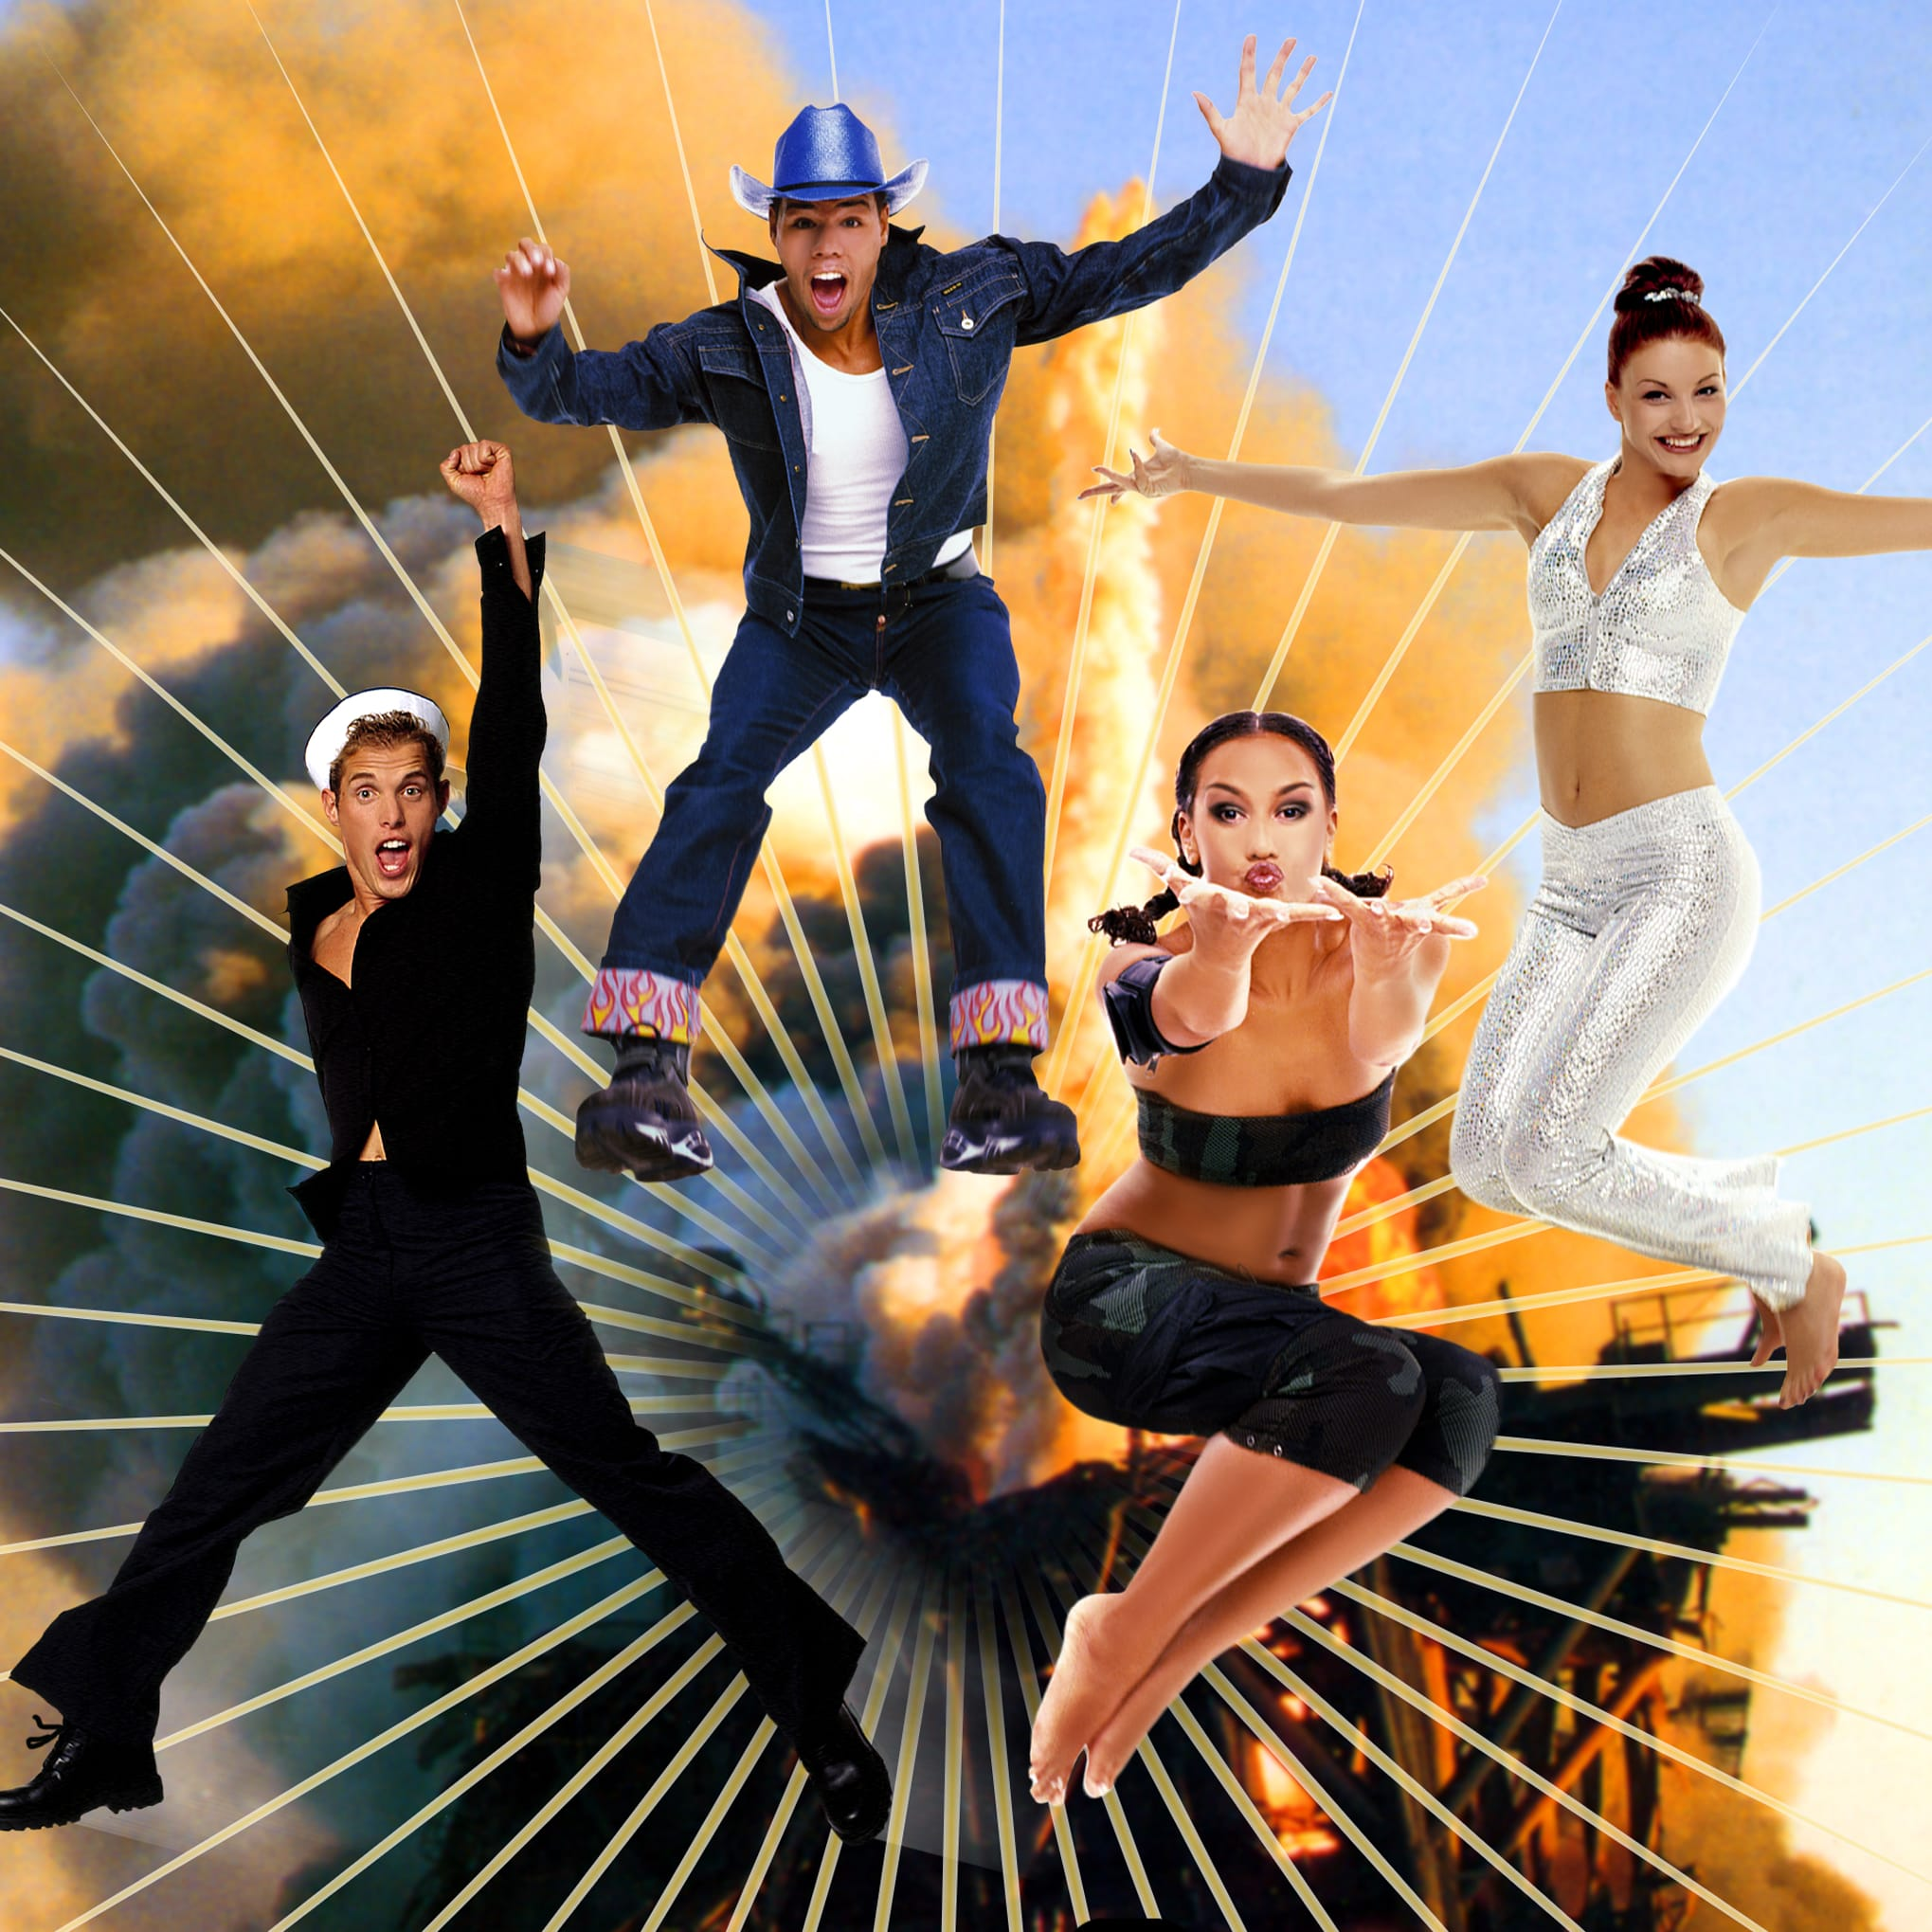 vengaboys flying through the air in front of an explosion